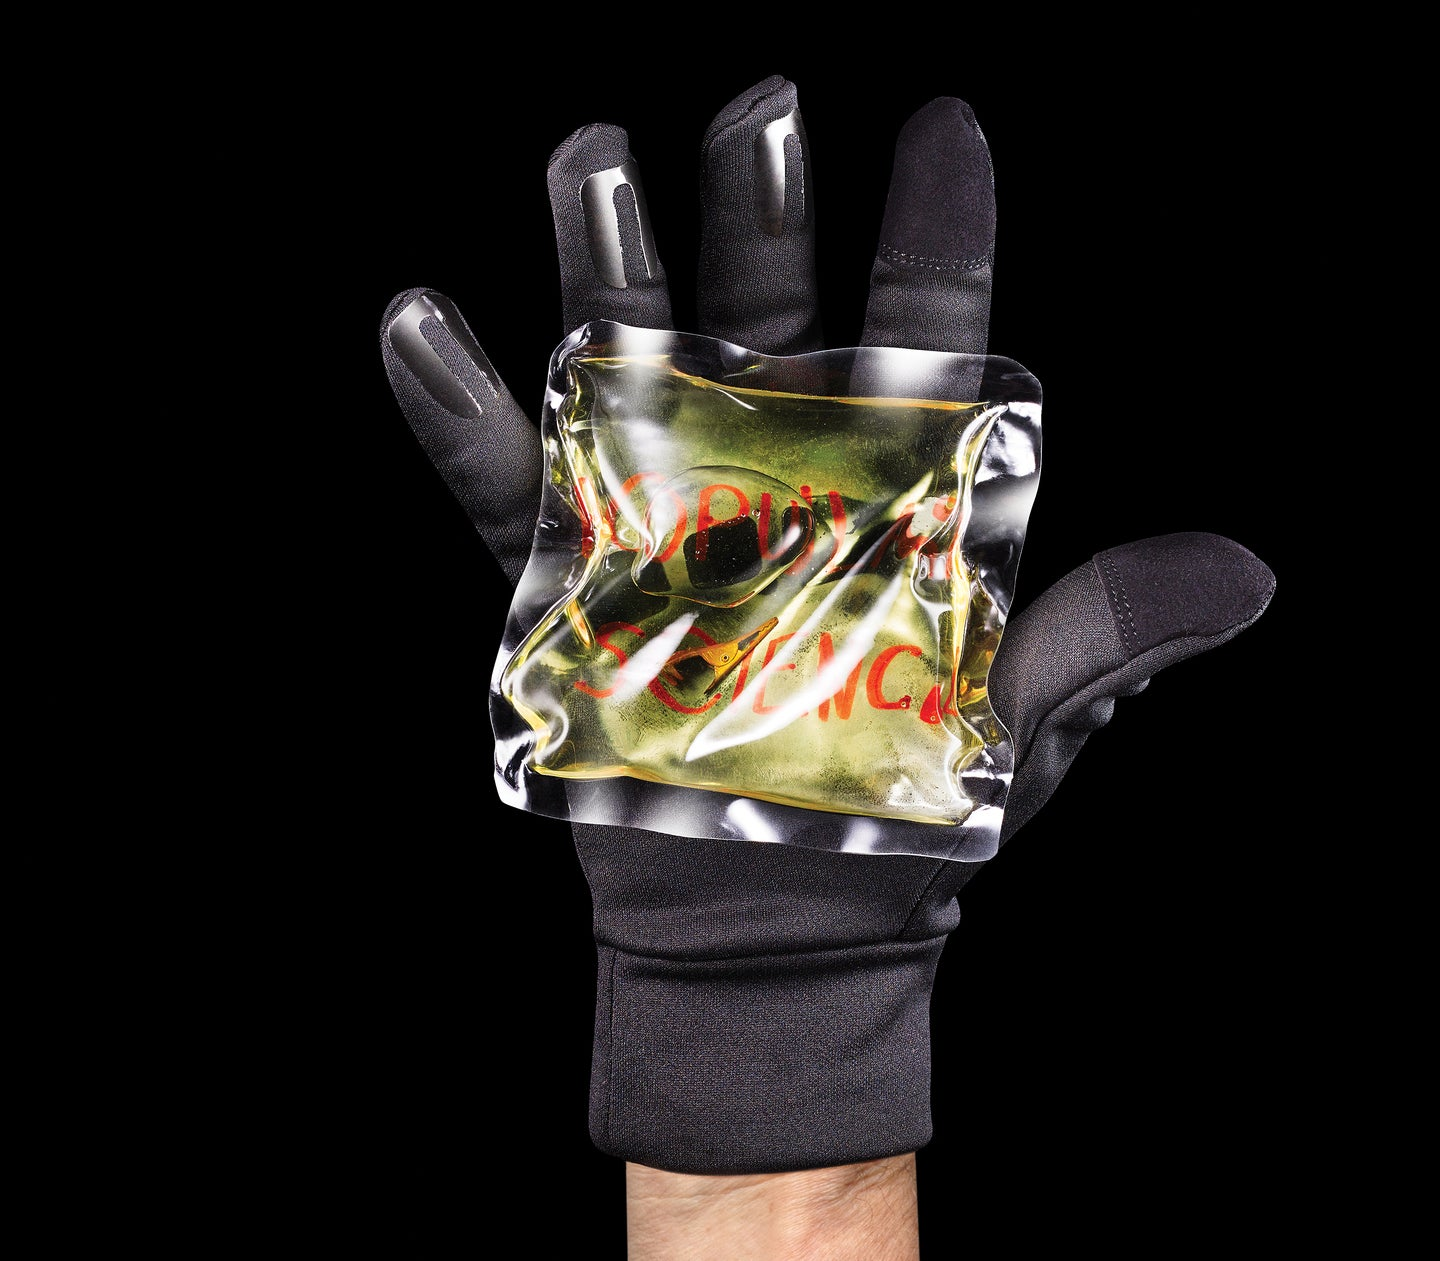 Conquer Cold With DIY Hand Warmers